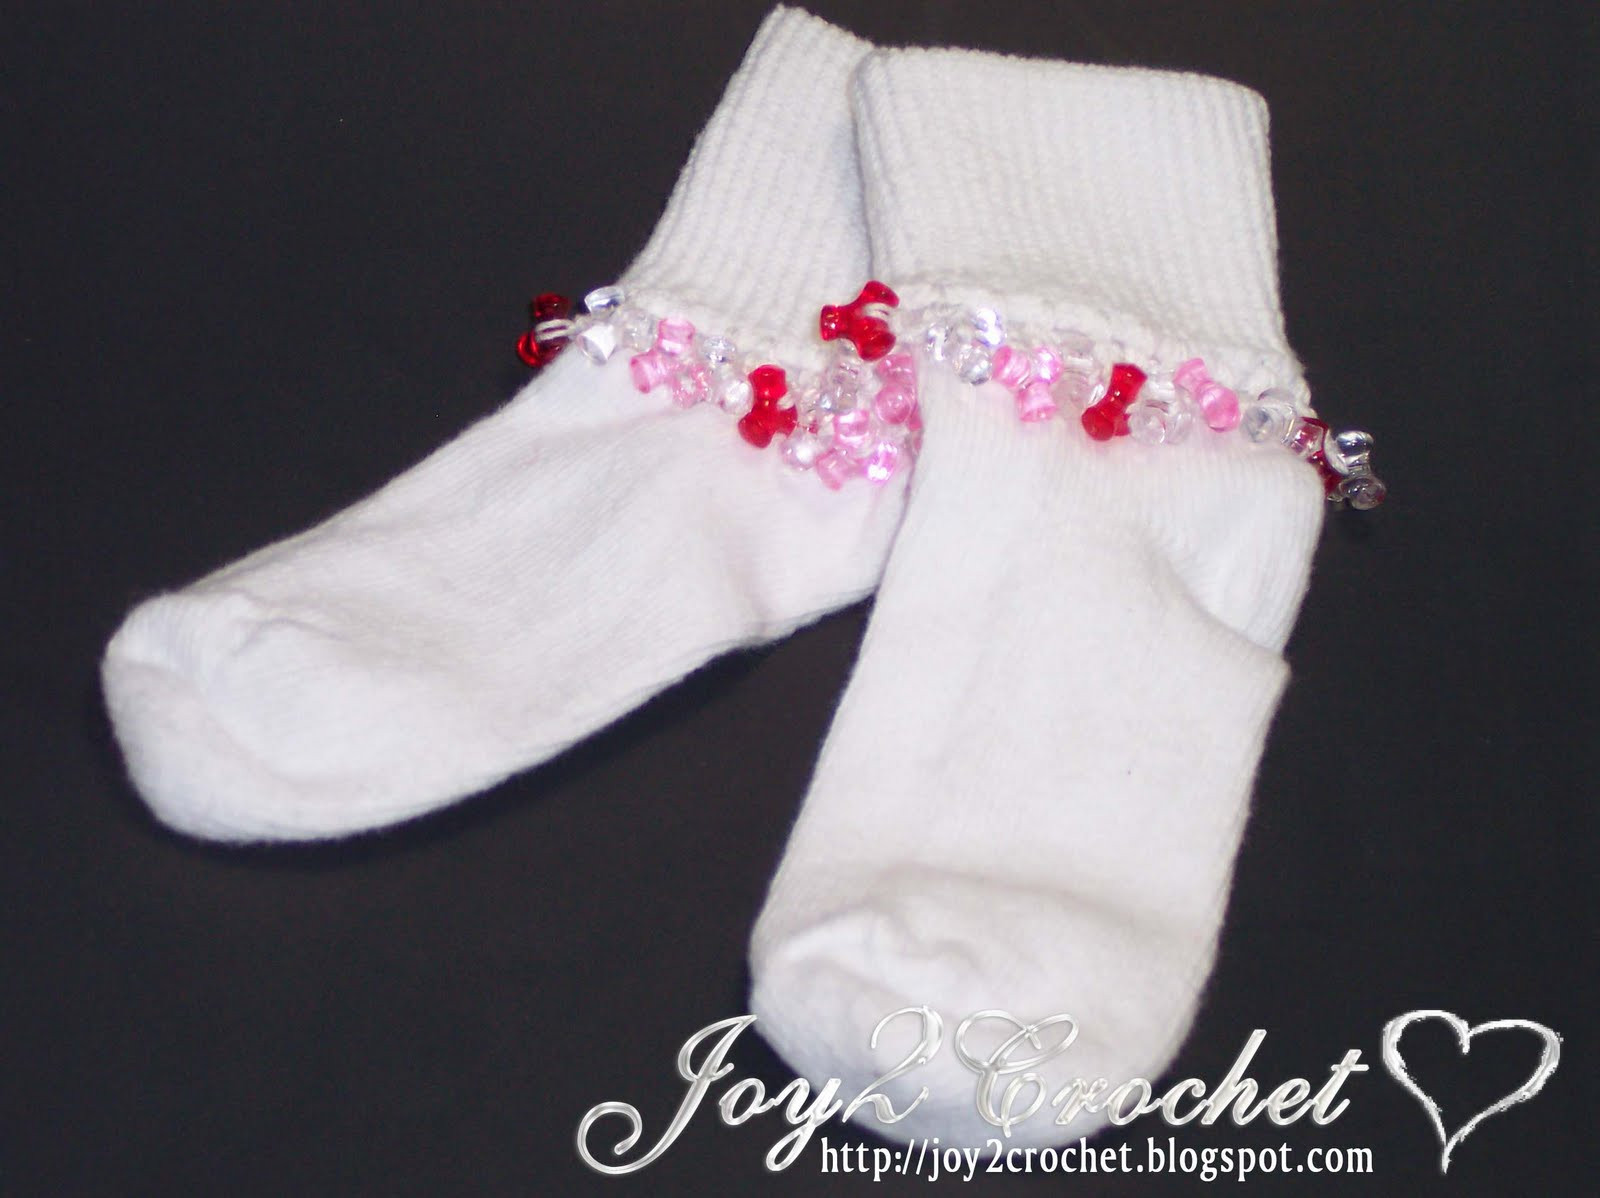 Lovely Joy 2 Crochet Crocheted Tri Bead Baby socks Crochet Baby socks Of Beautiful Crochet Baby Booties Patterns for Sweet Little Feet Crochet Baby socks